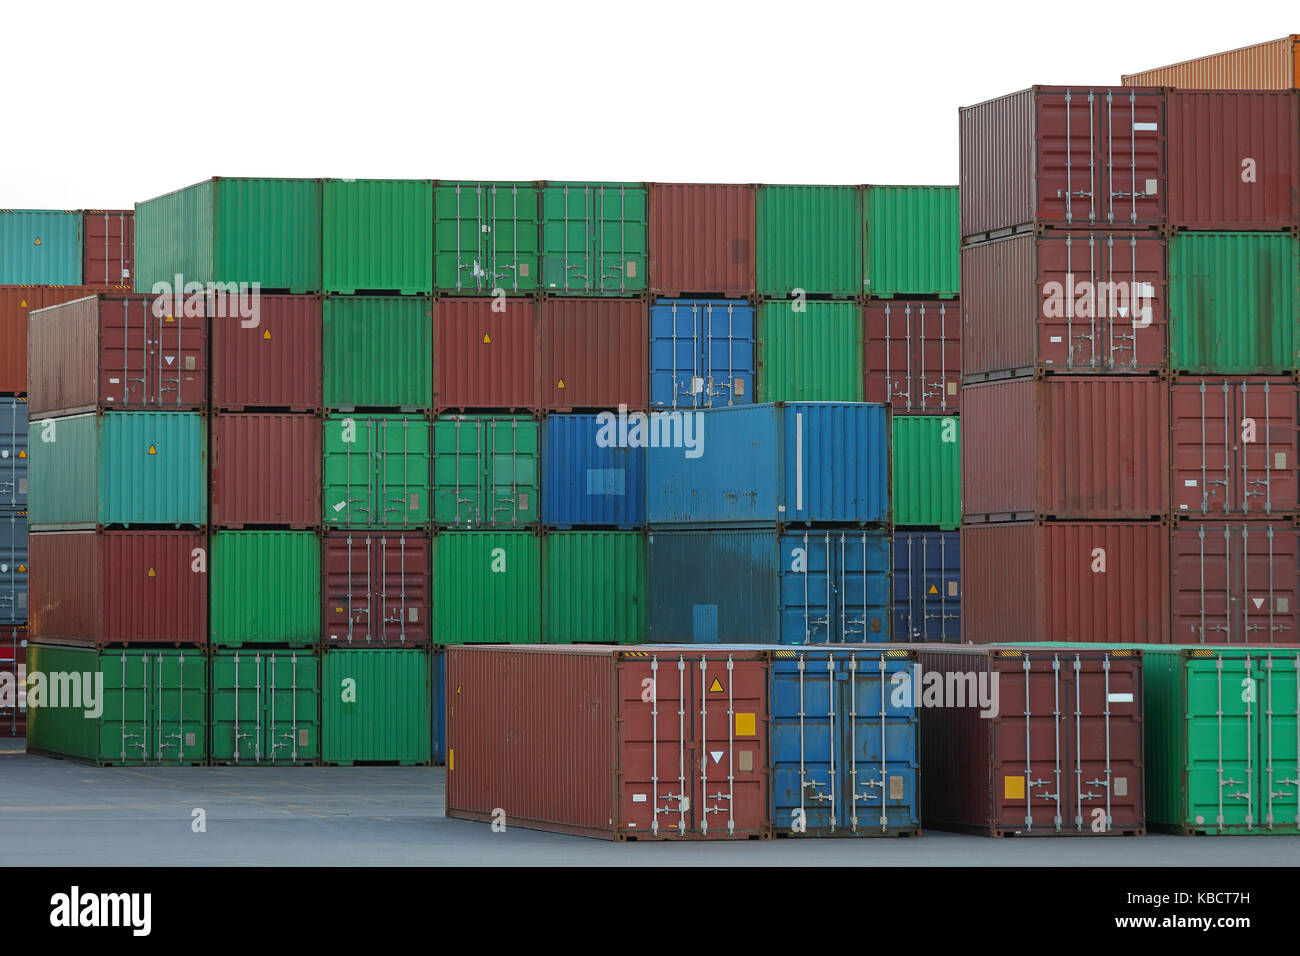 Intermodal containers at cargo terminal port - Stock Image